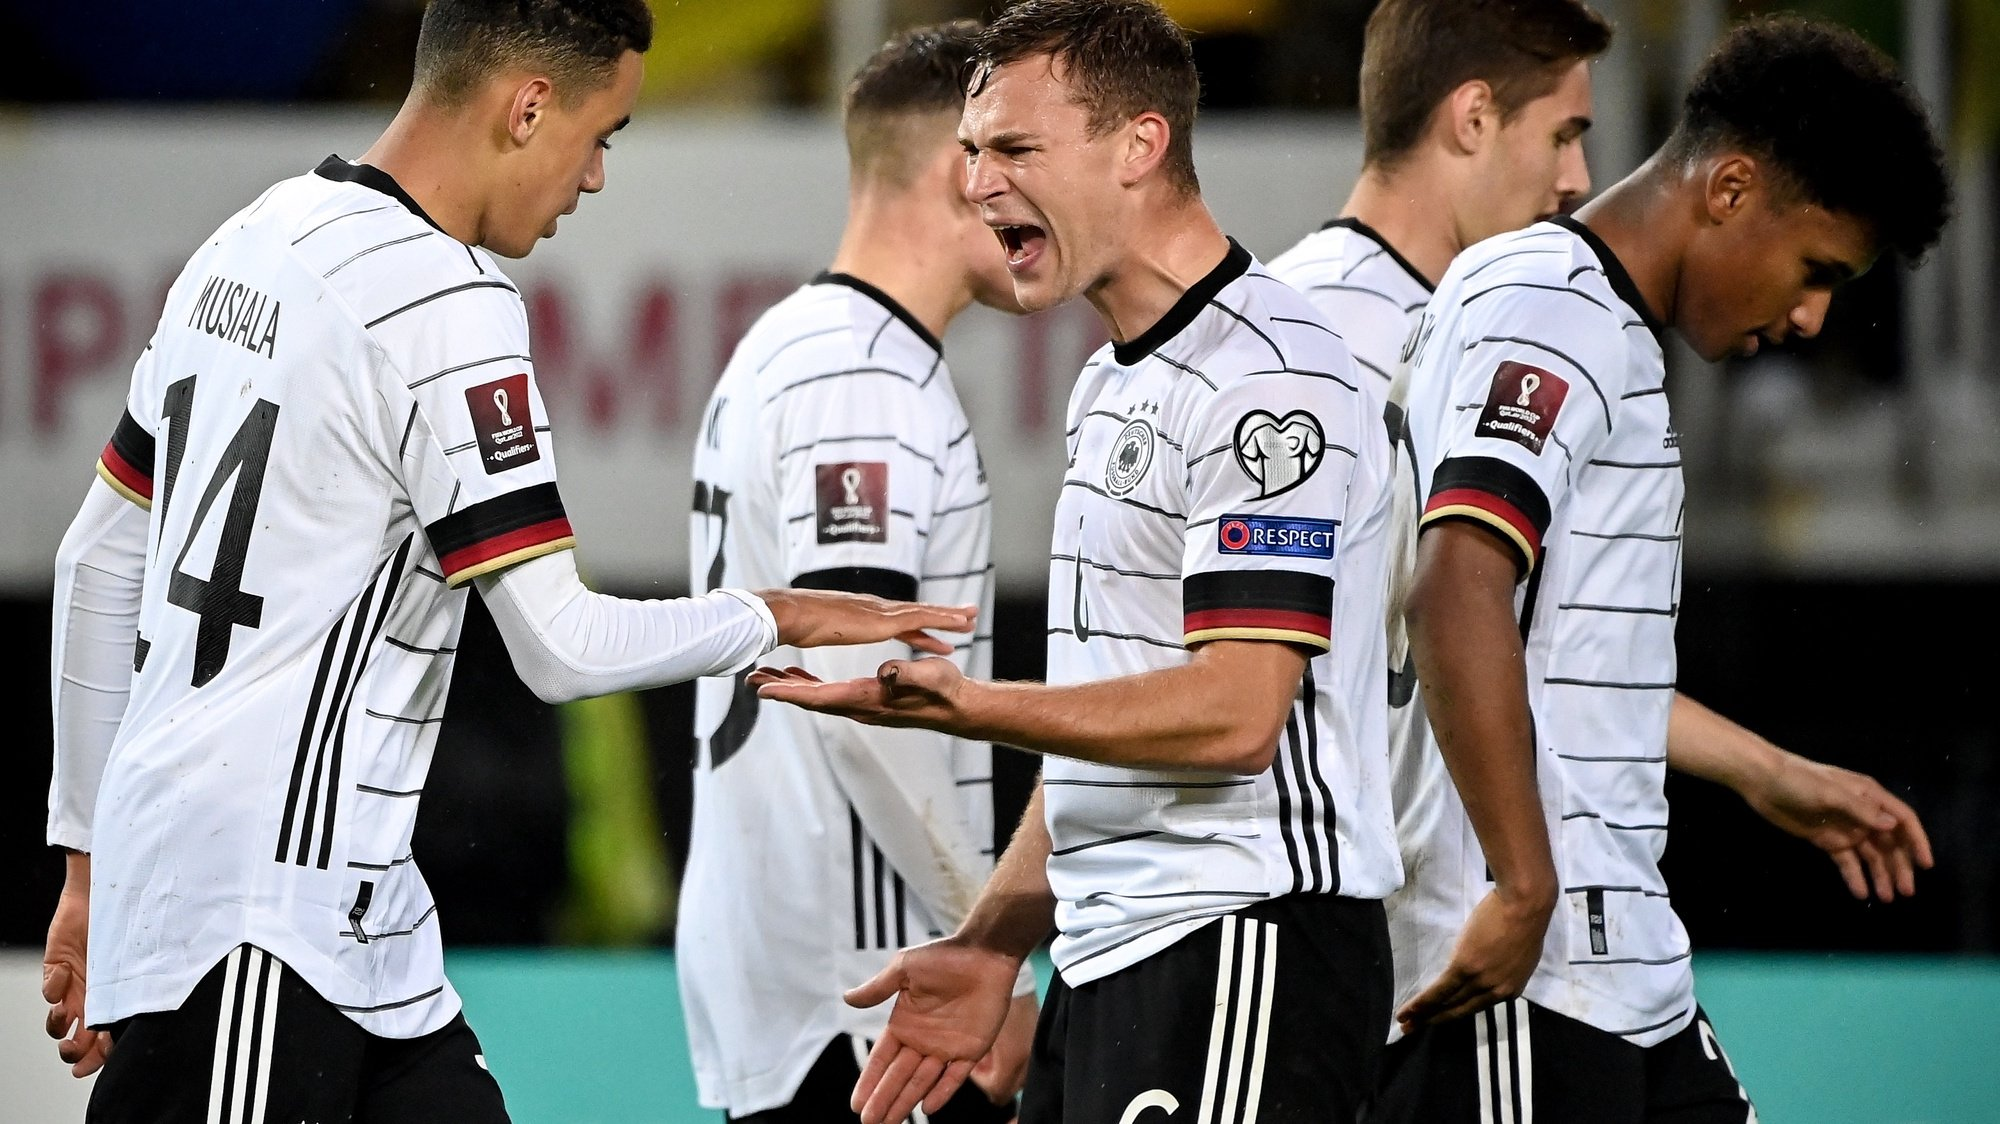 epa09519247 Germany's Jamal Musiala (L) celebrates with his teammate Joshua Kimmich (C) after scoring the 4-0 lead during the FIFA World Cup Qatar 2022 qualifying Group J soccer match between North Macedonia and Germany in Skopje, Republic of North Macedonia, 11 October 2021.  EPA/GEORGI LICOVSKI